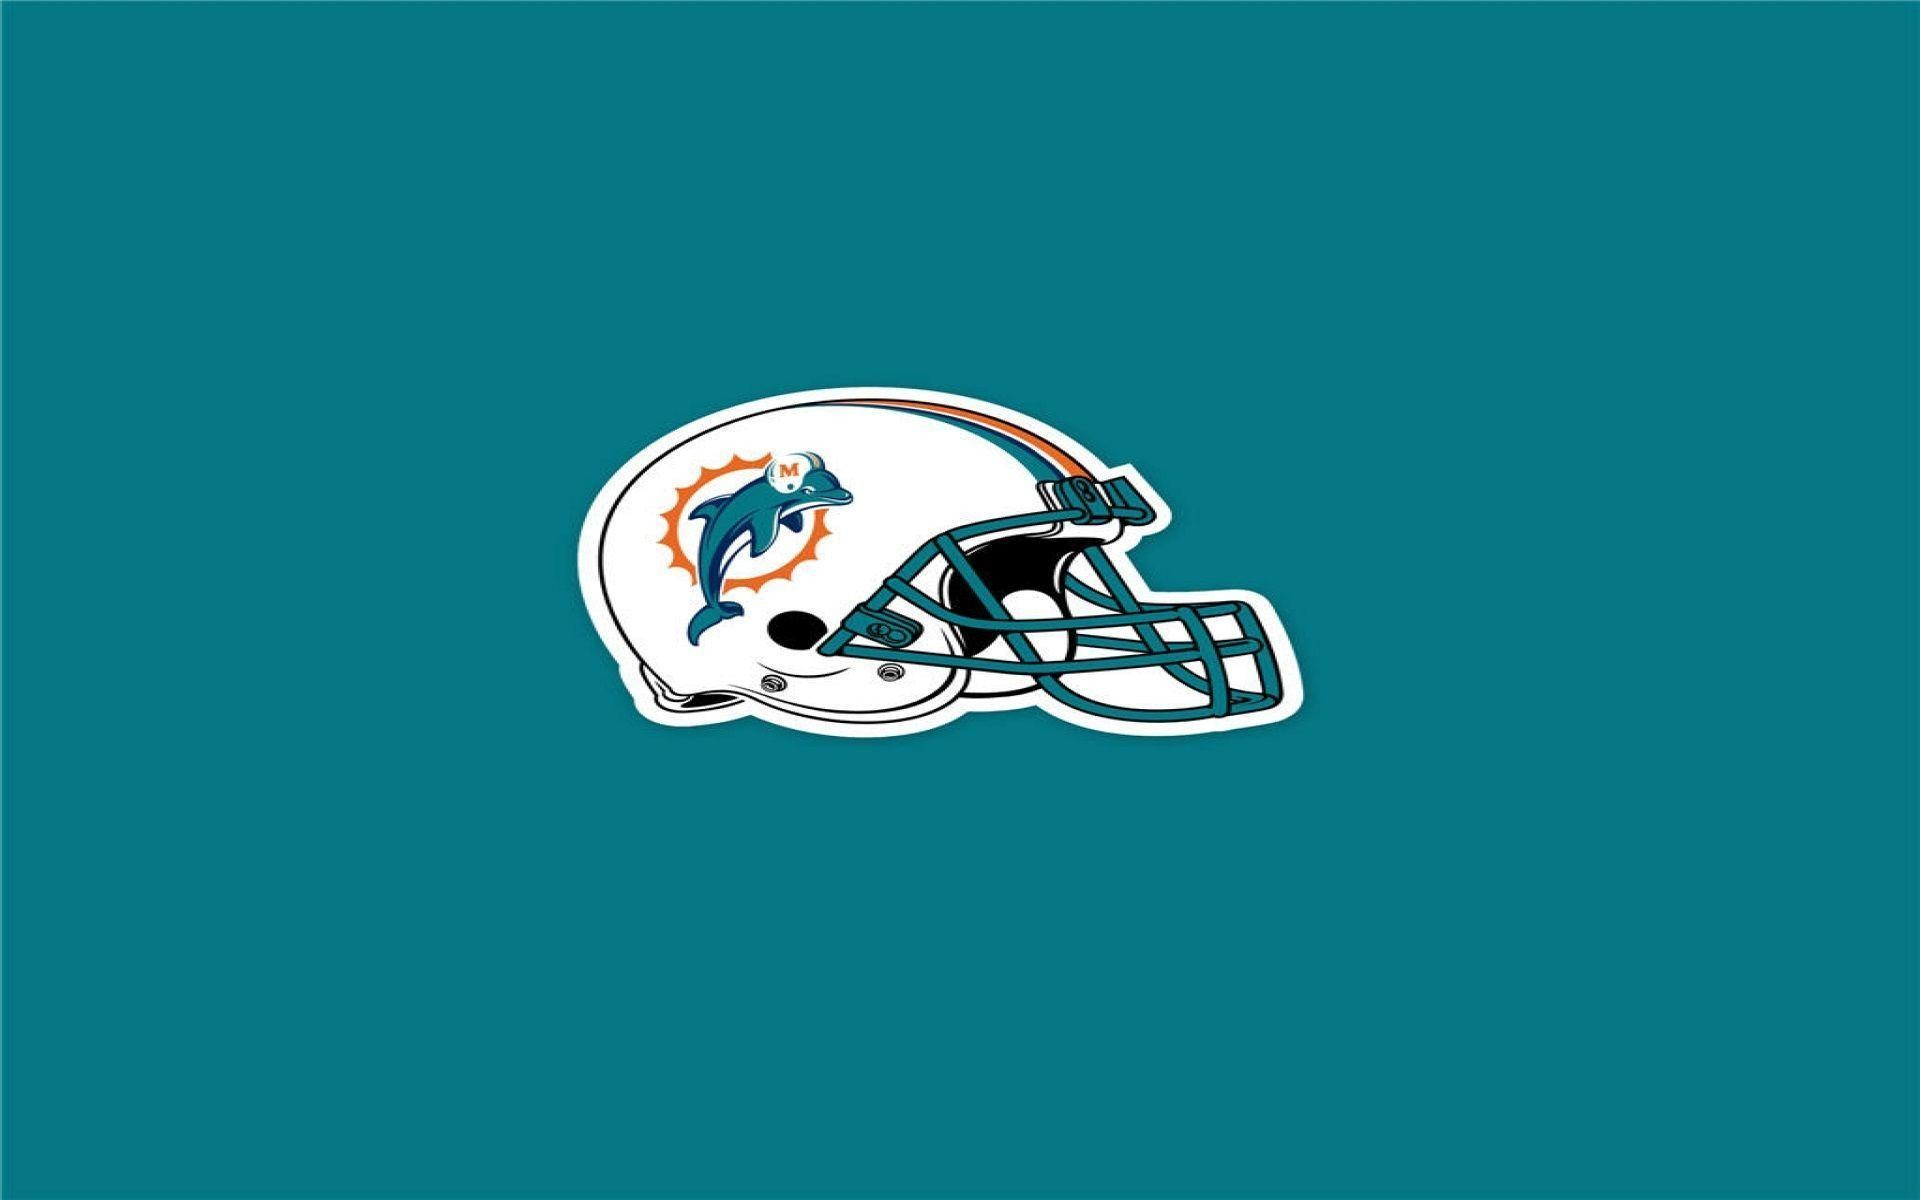 Miami Dolphins Wallpapers HD   Wallpapers, Backgrounds, Images .